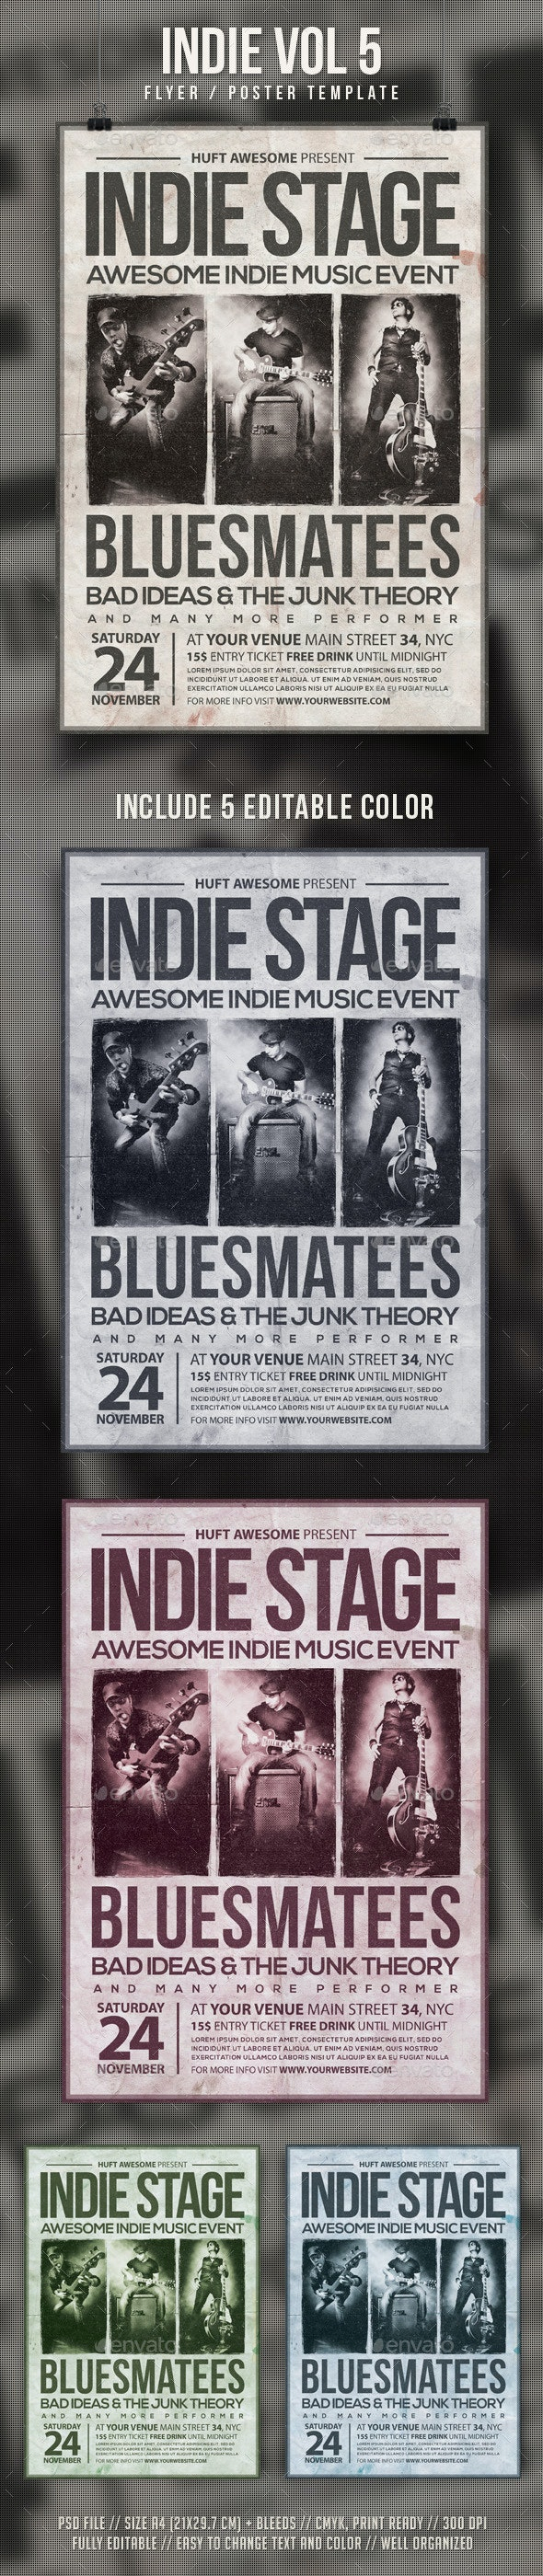 Indie Vol 5 Flyer Template - Concerts Events